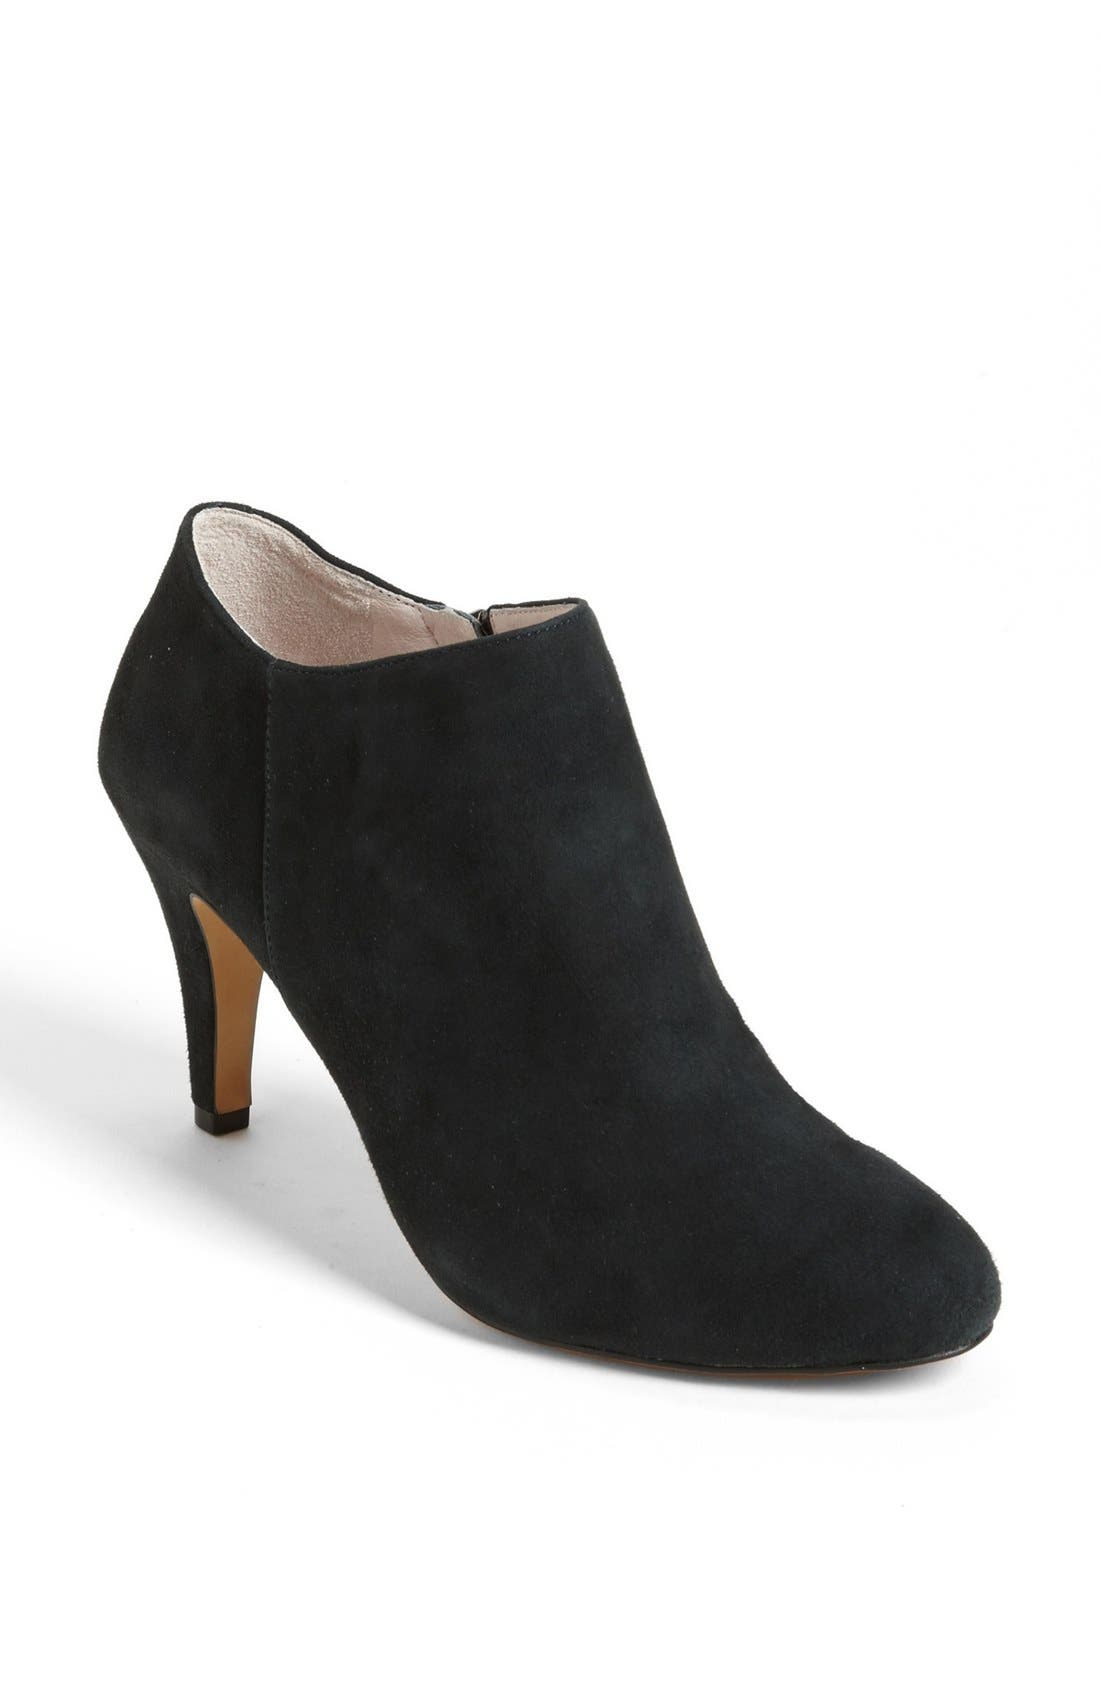 Alternate Image 1 Selected - Vince Camuto 'Vive' Bootie (Nordstrom Exclusive)